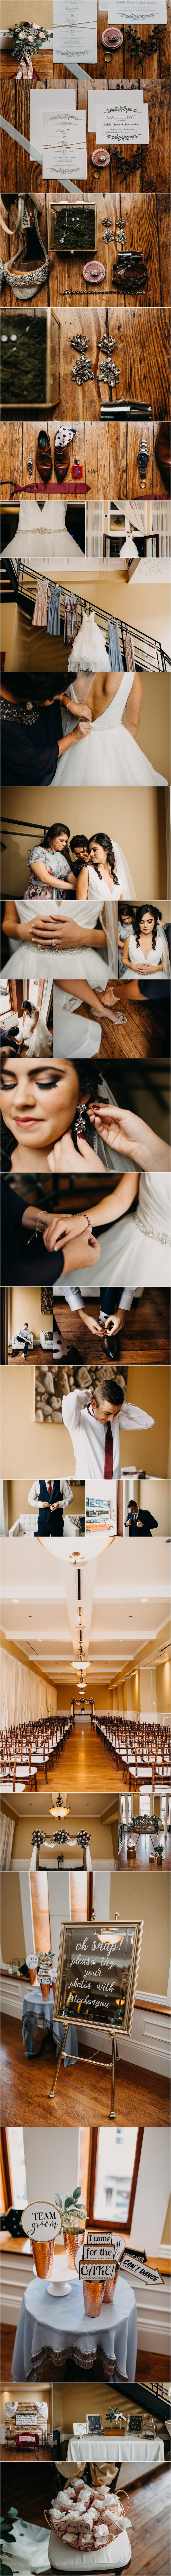 springfield missouri wedding photographer